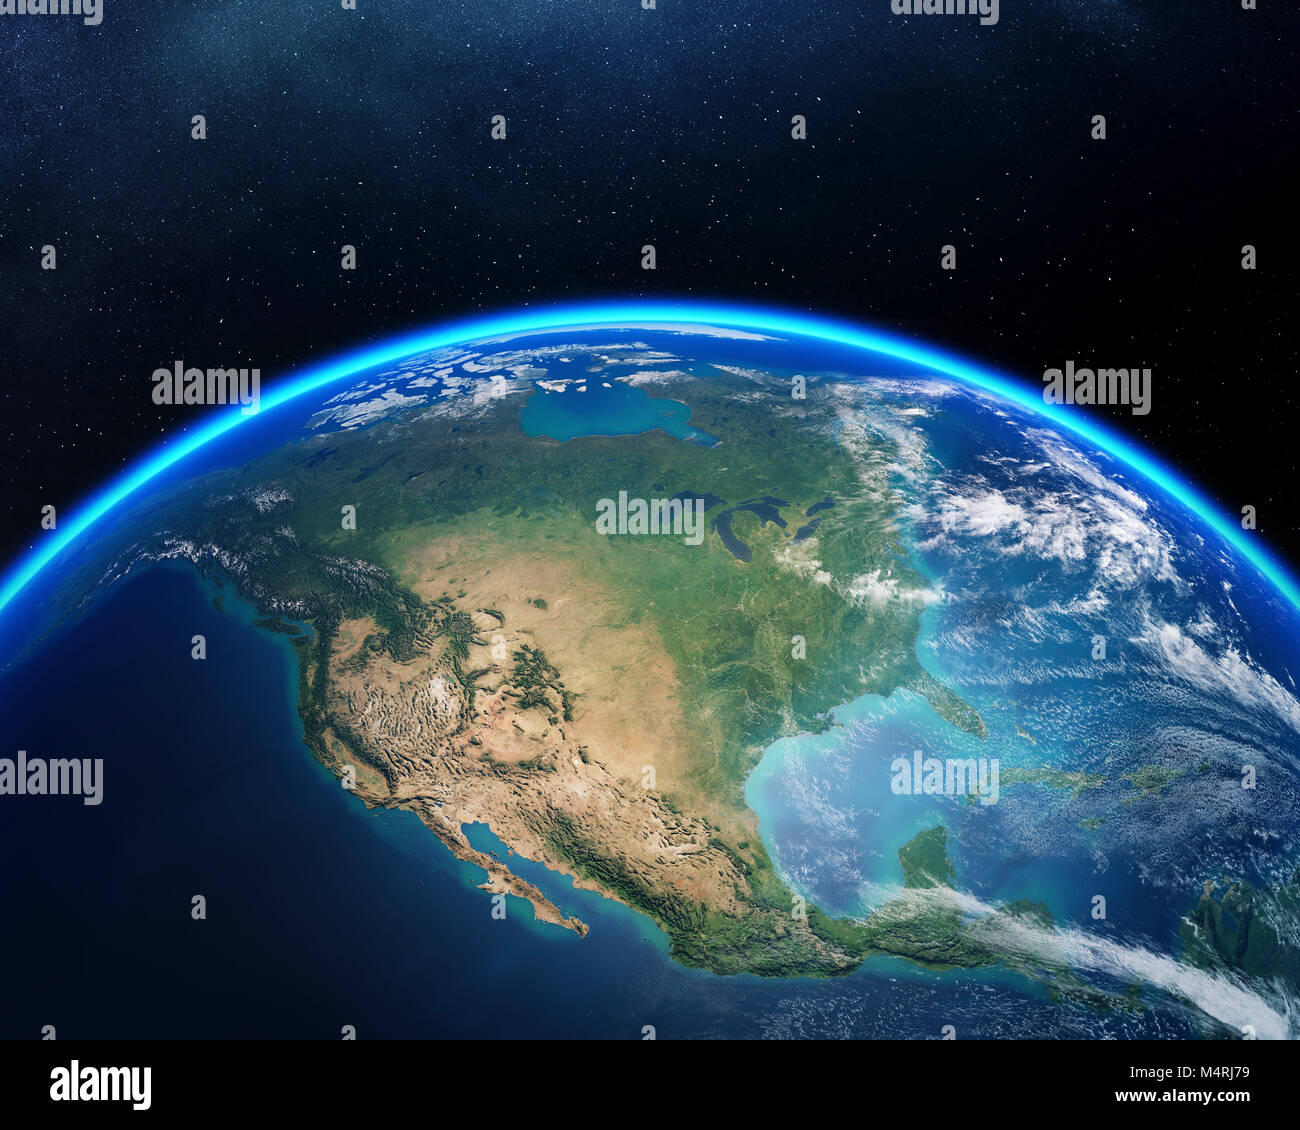 Earth viewed from space with focus on North America. Detailed 3D render against dark starry night sky (Elements - Stock Image